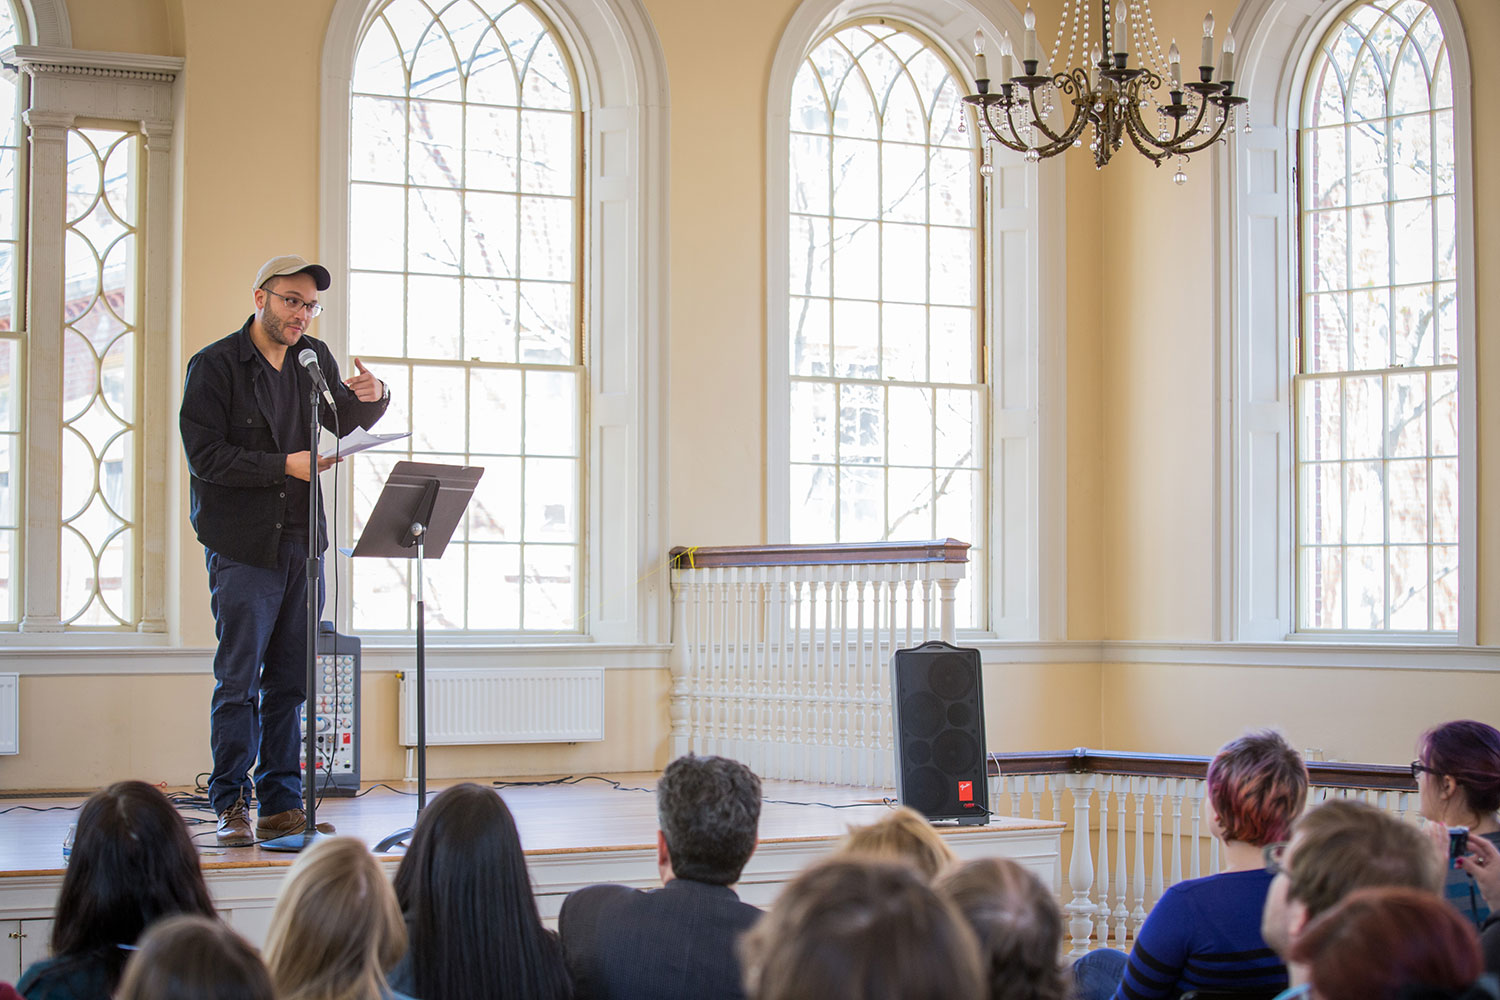 A previous year's Massachusetts Poetry Festival event at Salem's Old Town Hall. (Courtesy Massachusetts Poetry Festival.)